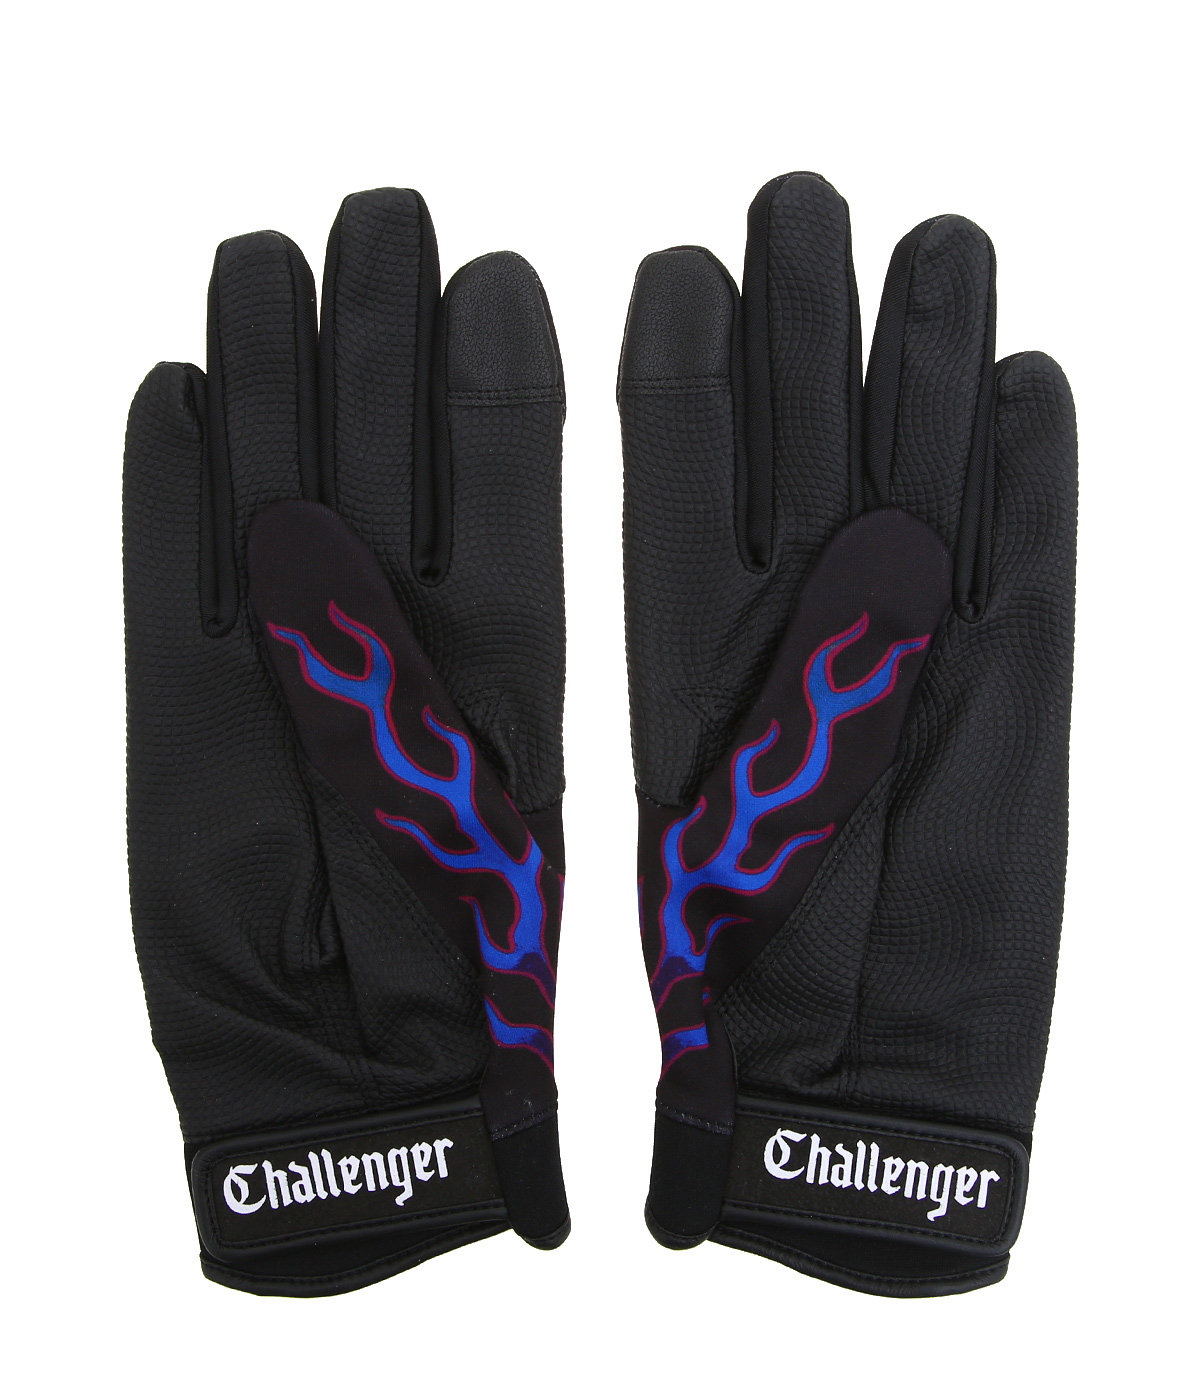 FIRE MECHANIC GLOVE